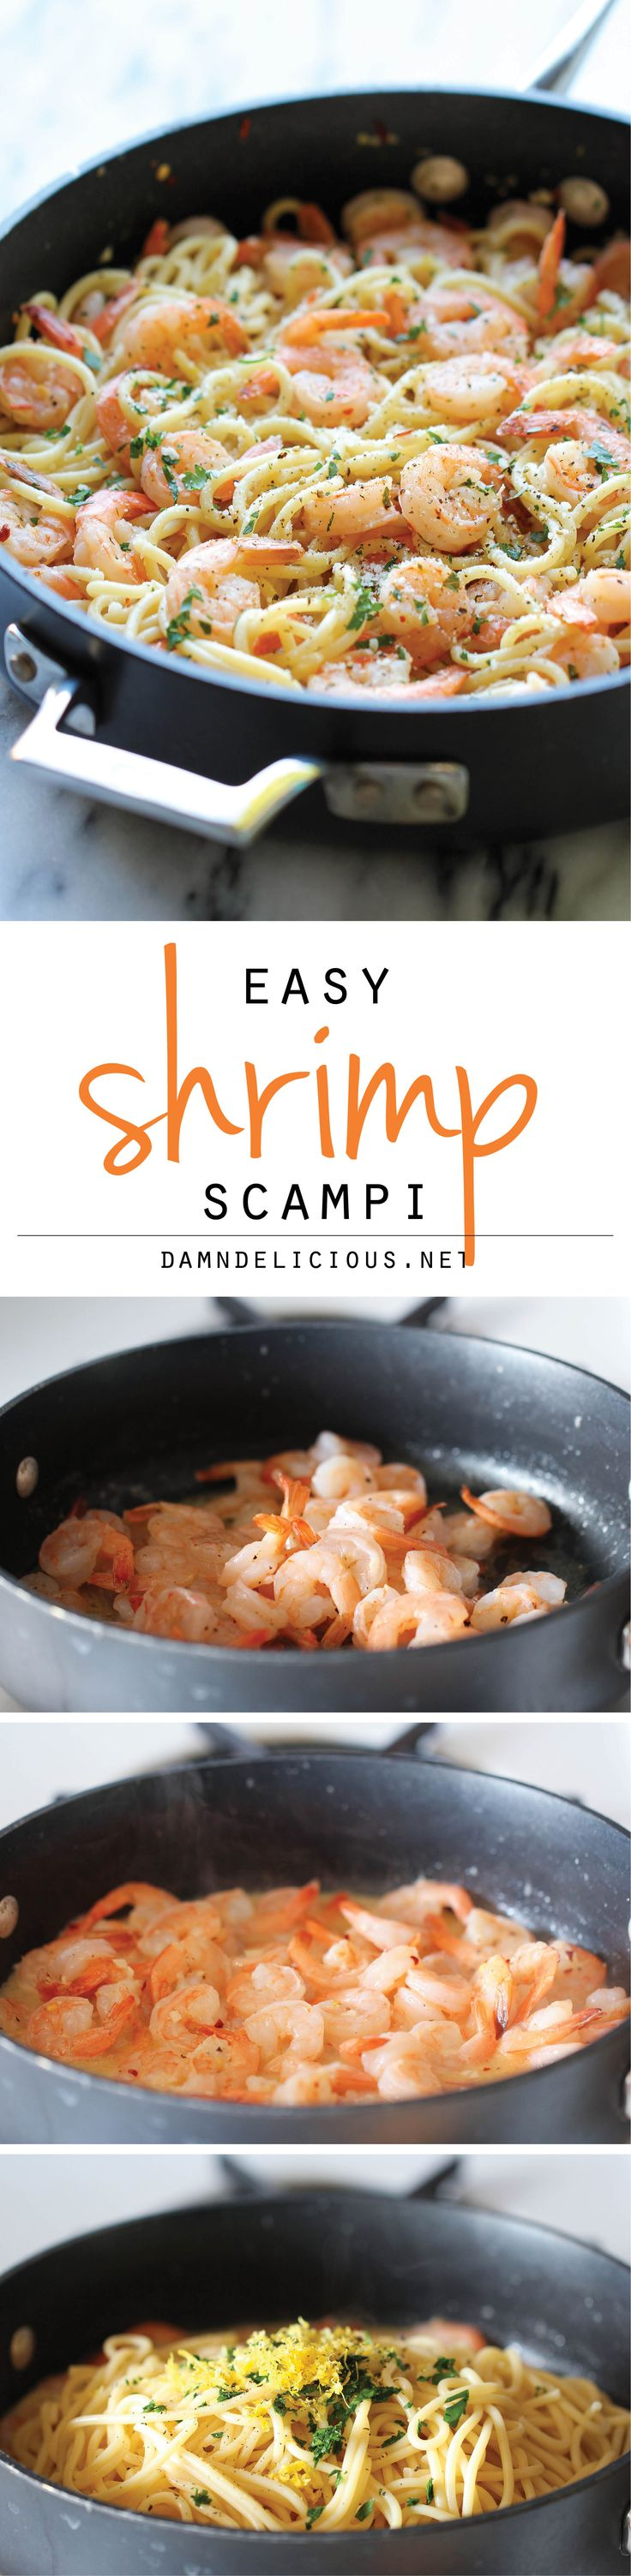 Shrimp Scampi - You won't believe how easy this comes together in just 15 minutes - perfect for those busy weeknights! @damndelicious